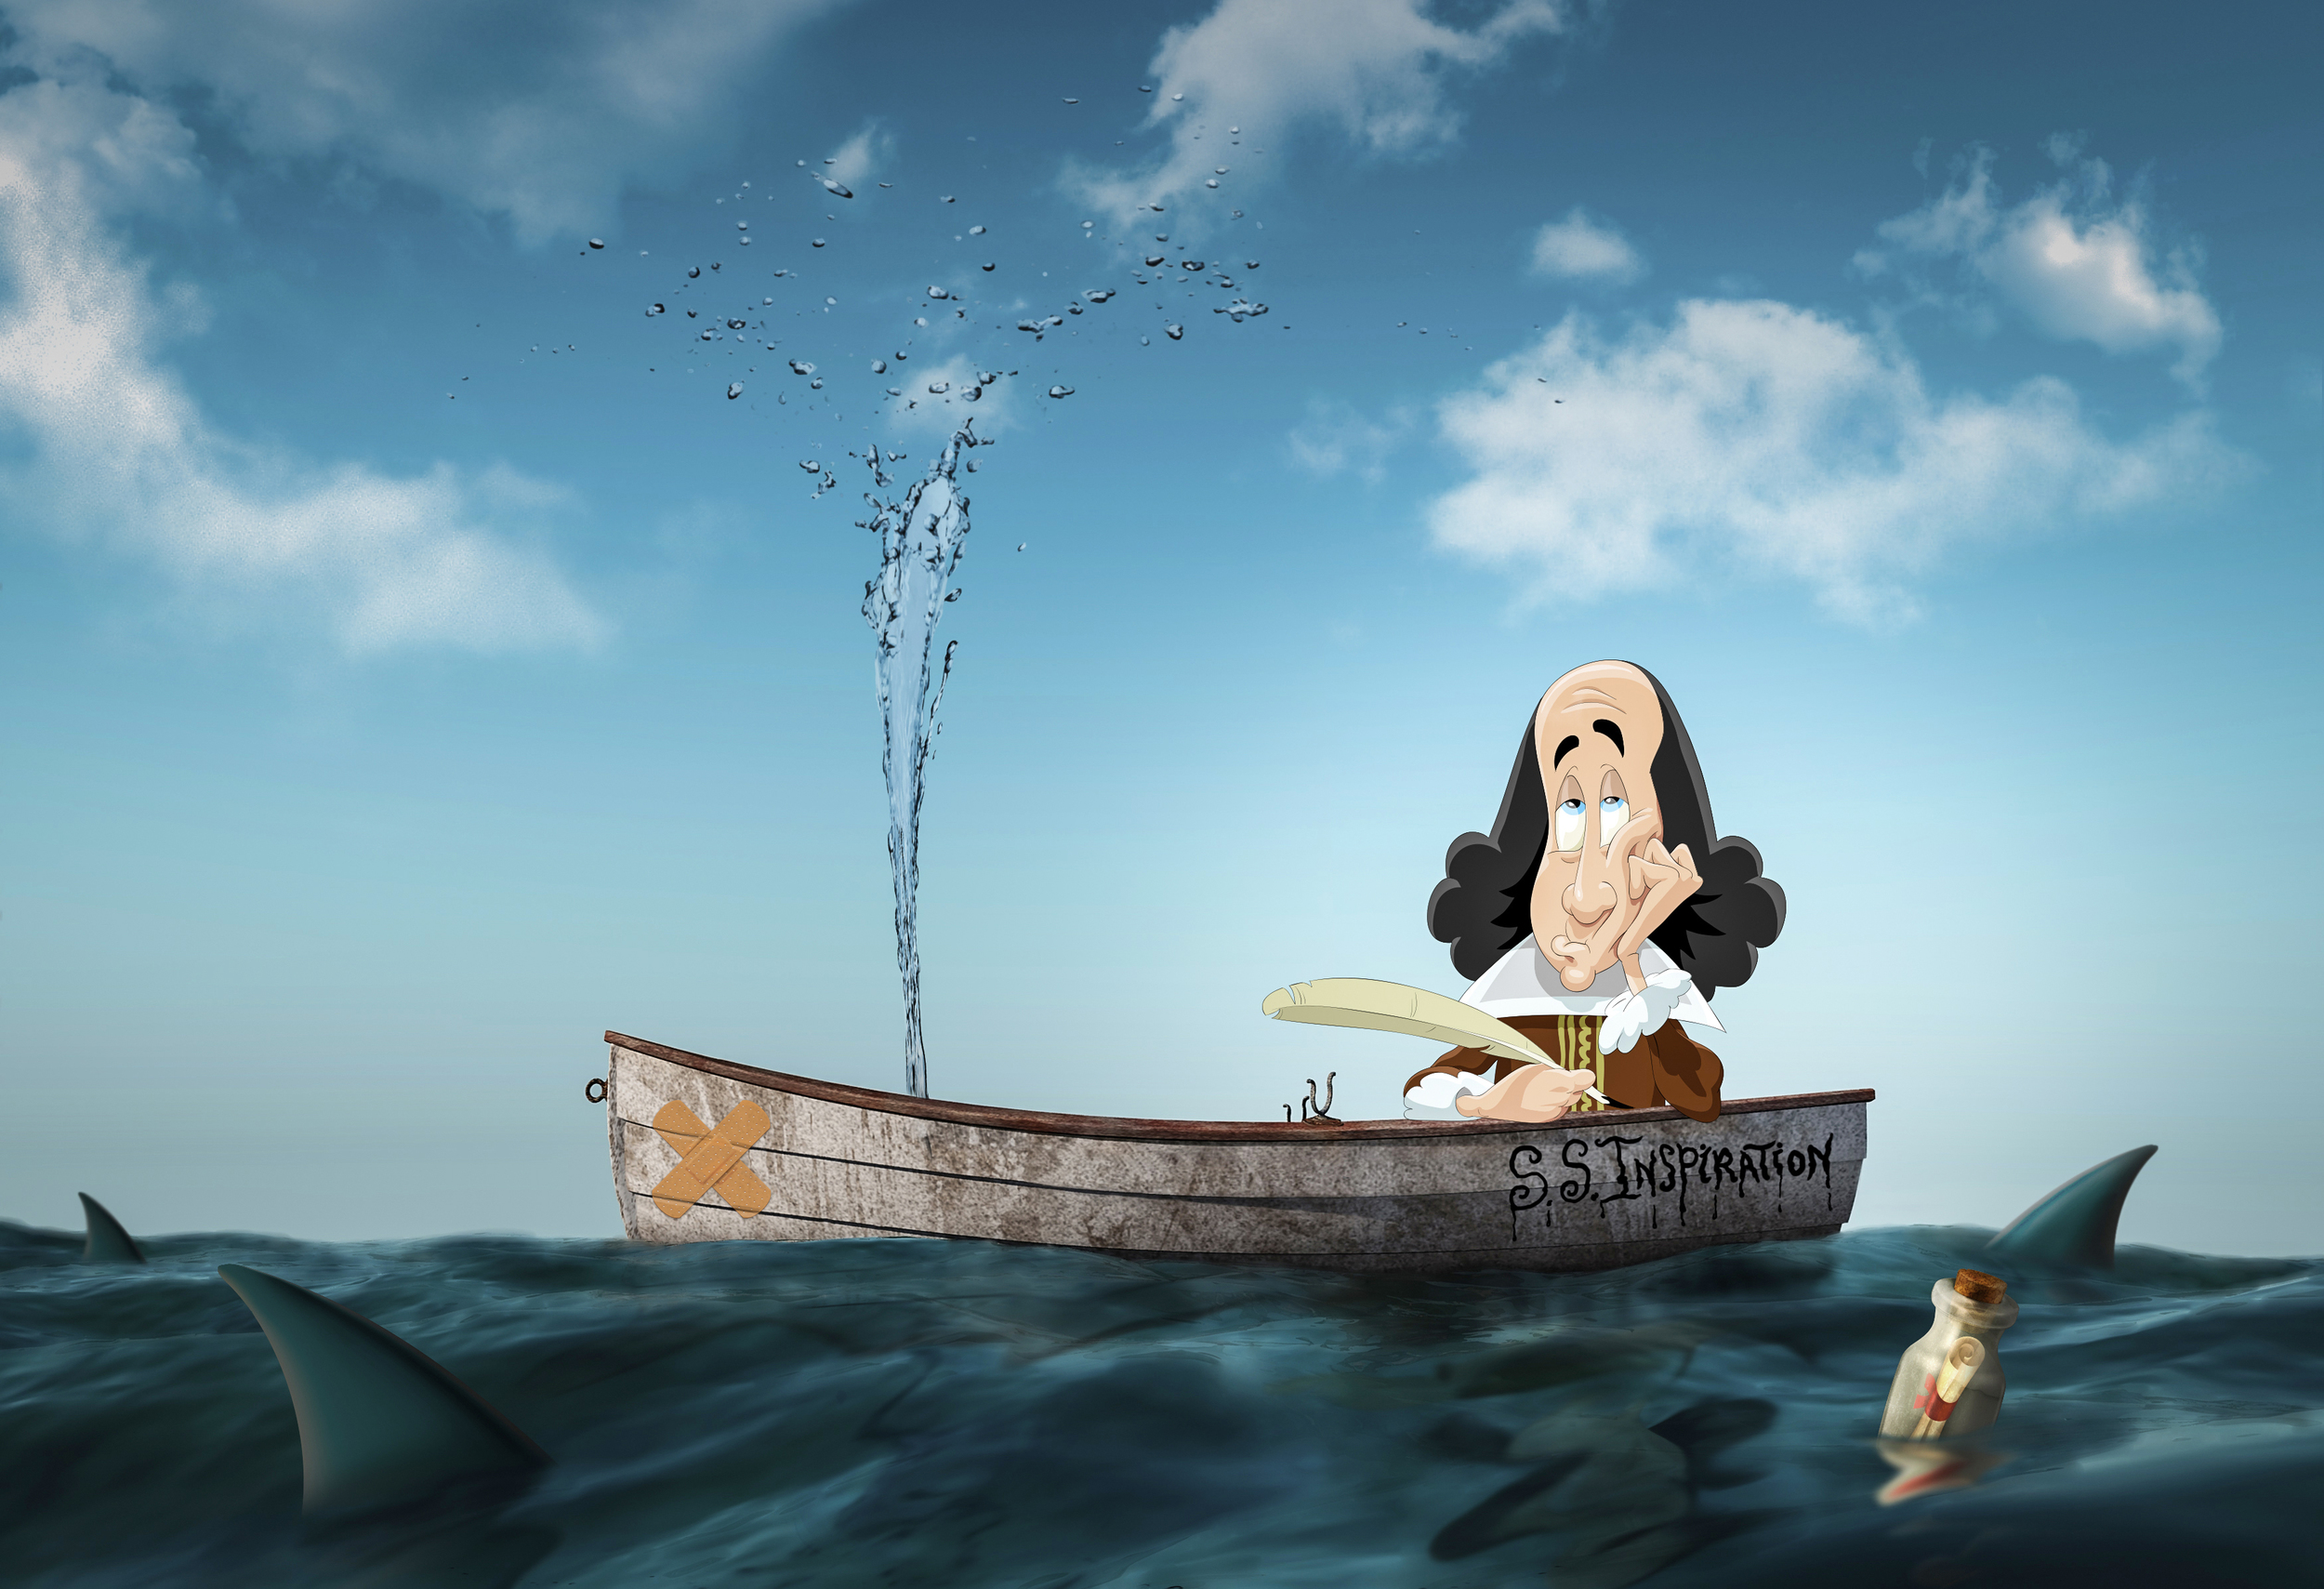 To sink or not to sink... that is the question!